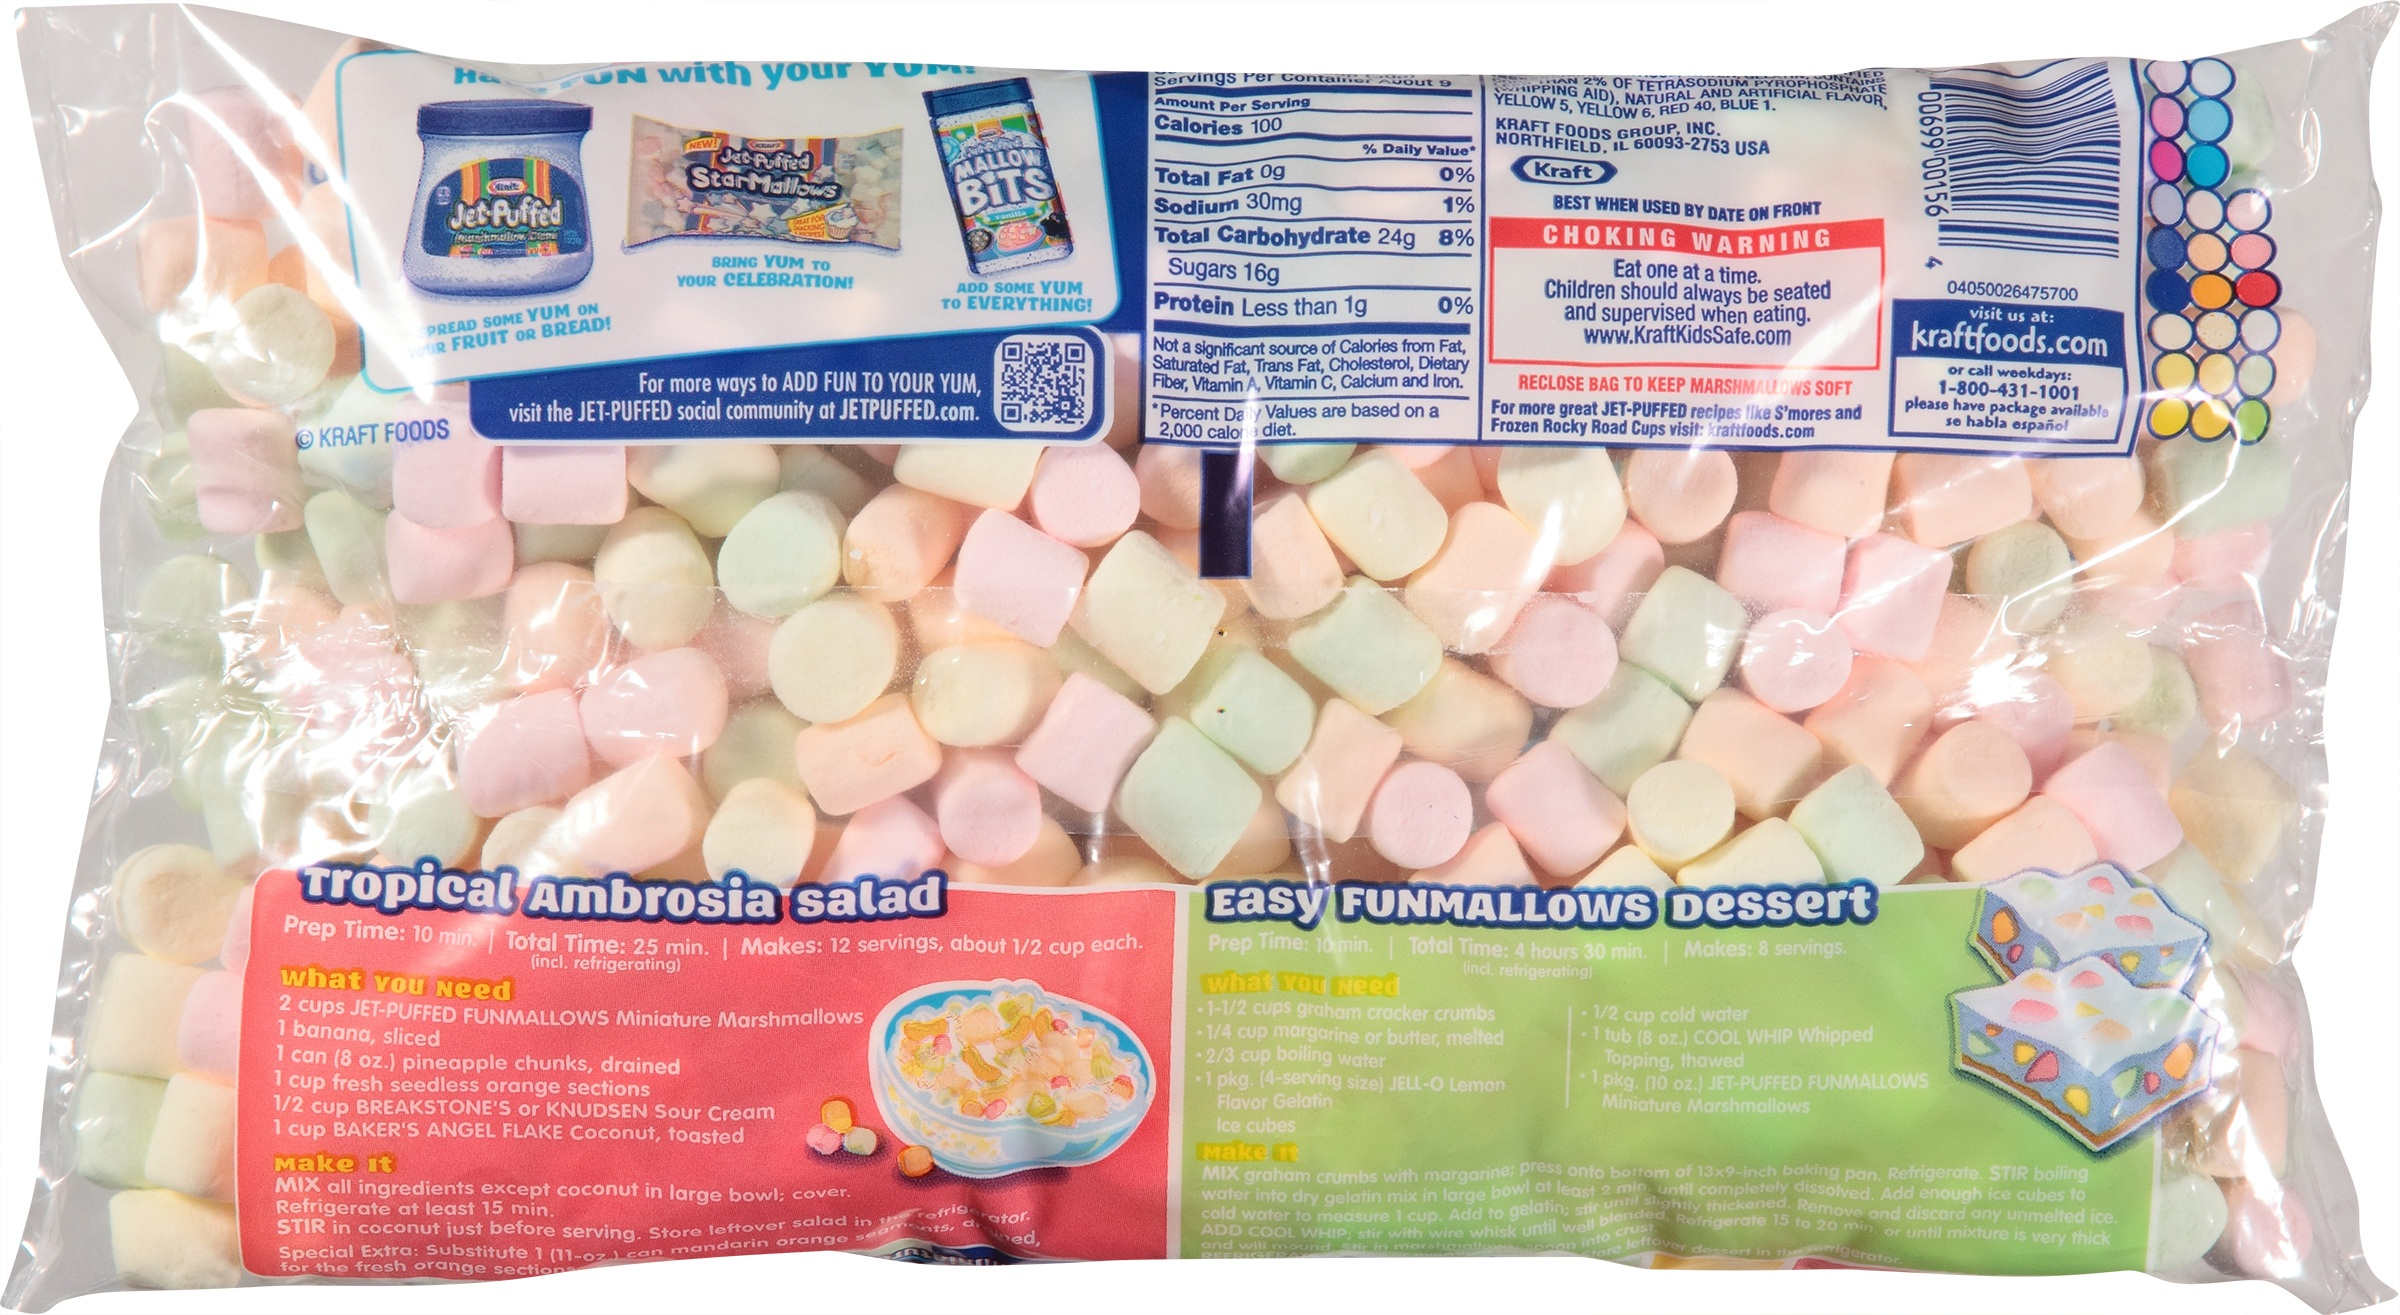 marketing strategy jet puffed marshmallows Profit from the popular ingredient found in snacks and desserts on 29% of menus 2 from micromallows to jumbo marshmallows and everything in between, jet-puffed gives you countless ways to create inspiring culinary confections.